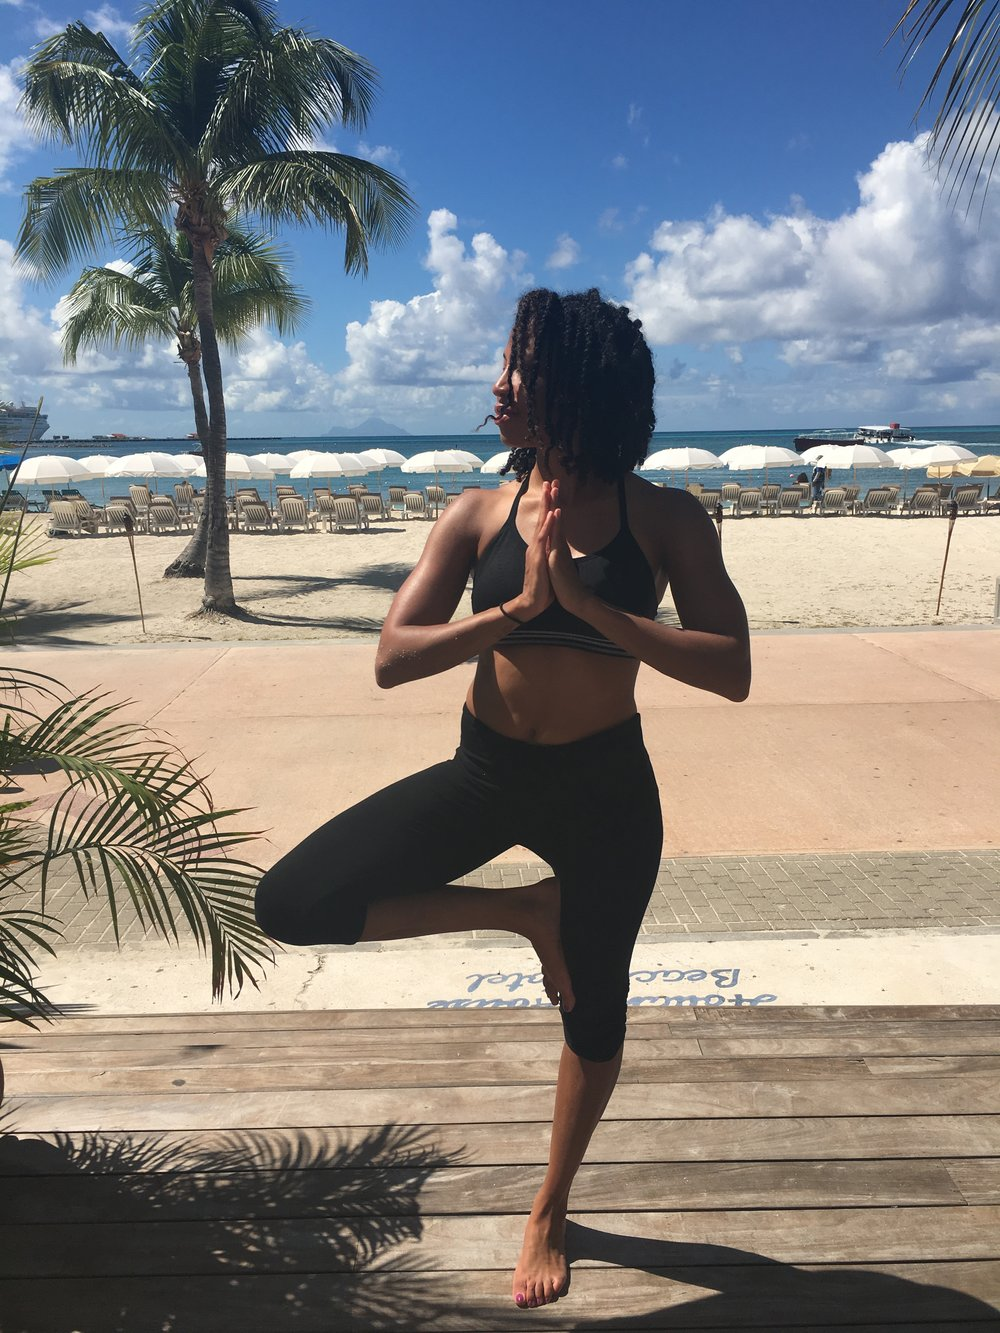 "Nailah S. - Brooklyn, NY/Chicago, IL | St Maarten Oct 2016 Rejuvenated:Centered:Motivated ""I decided to do this retreat at a time in my life where the way I had been operating in my life and career wasn't working.  The was the perfect way to shake of that burnt out feeling, get centered in my mind, body, and should, and leave with a sense of possibility to create the life I want.  Nicole + Marisa are so attentive and fun travel buddies.  Celeste was such a great instructor incorporating the right balance of physical challenge and breathe.  I'm forever grateful."""